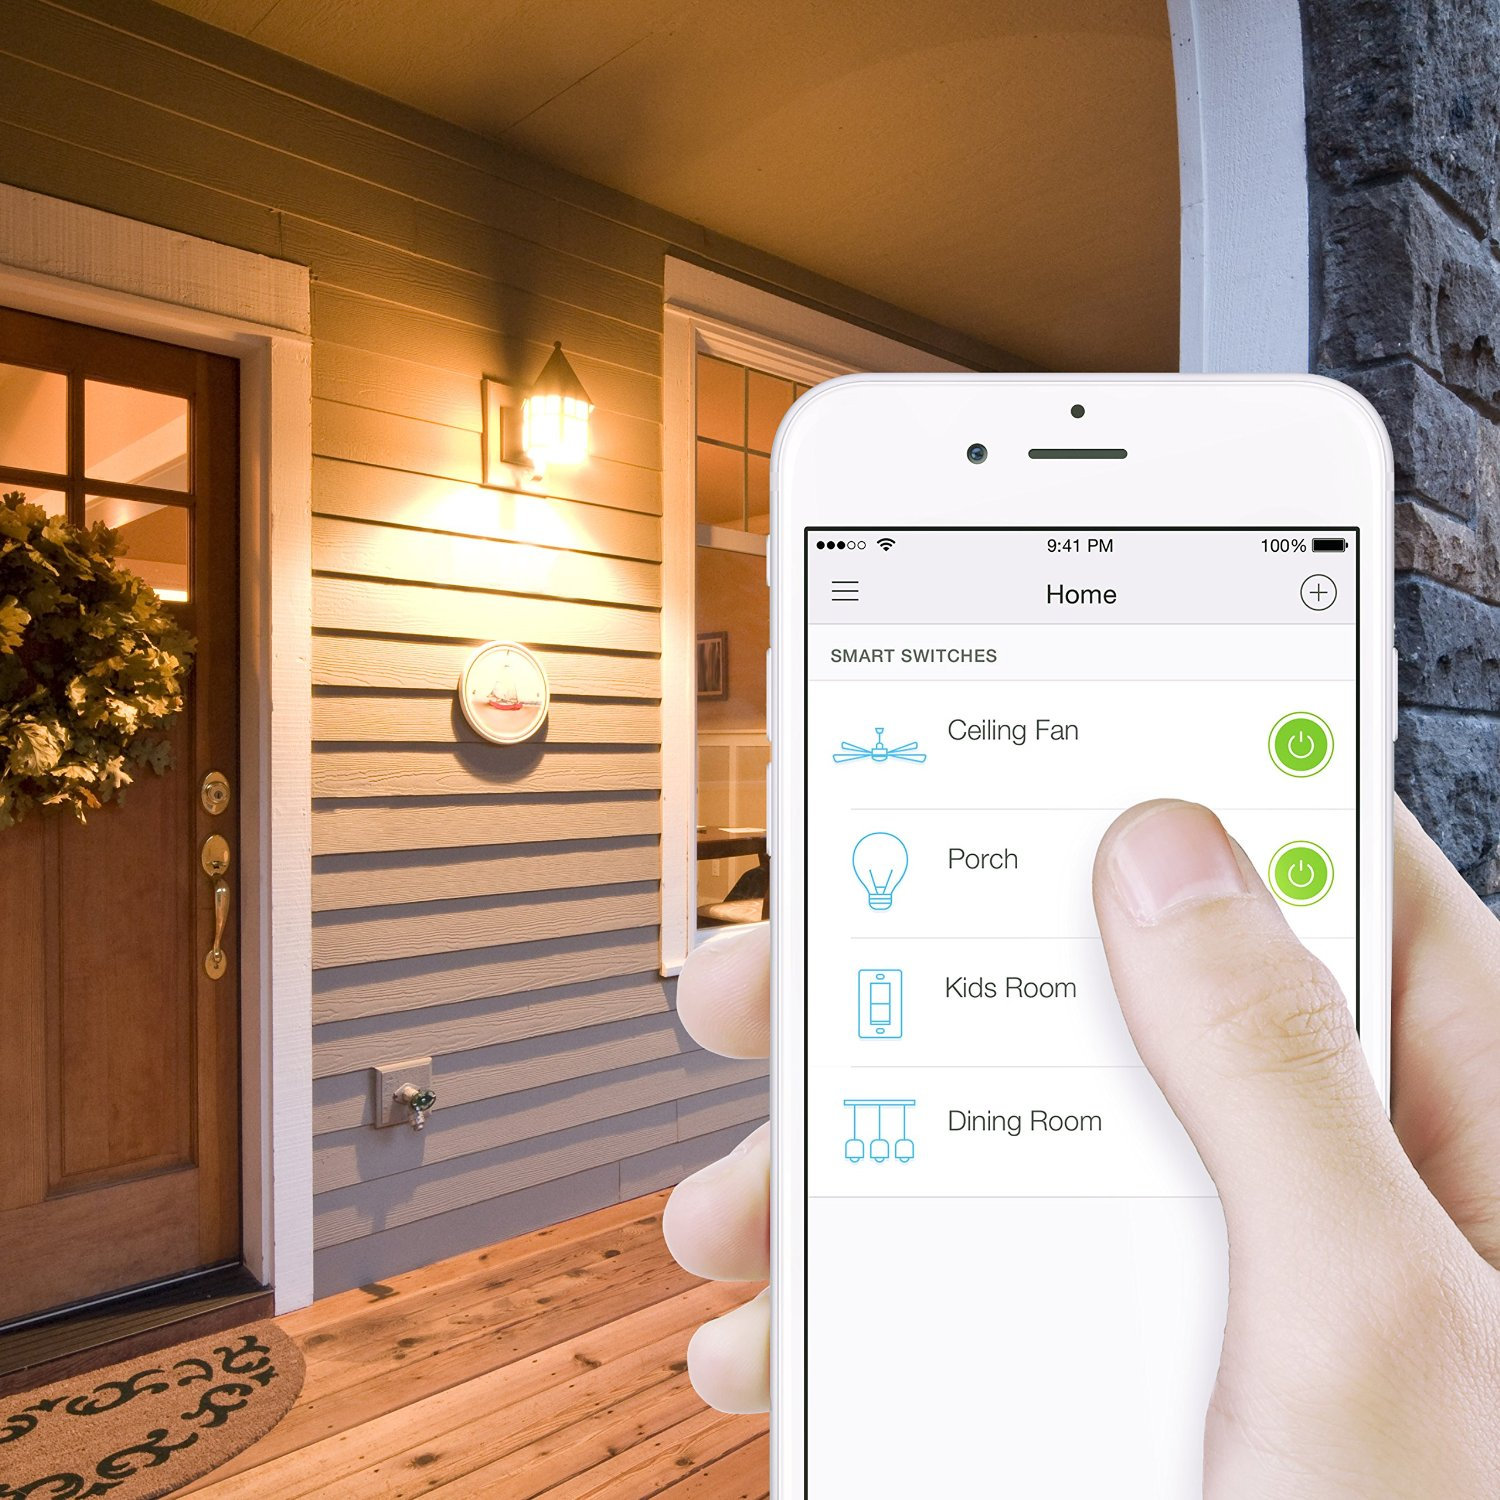 Best Smart Home Gadgets to Control With Amazon Alexa - Electronic House